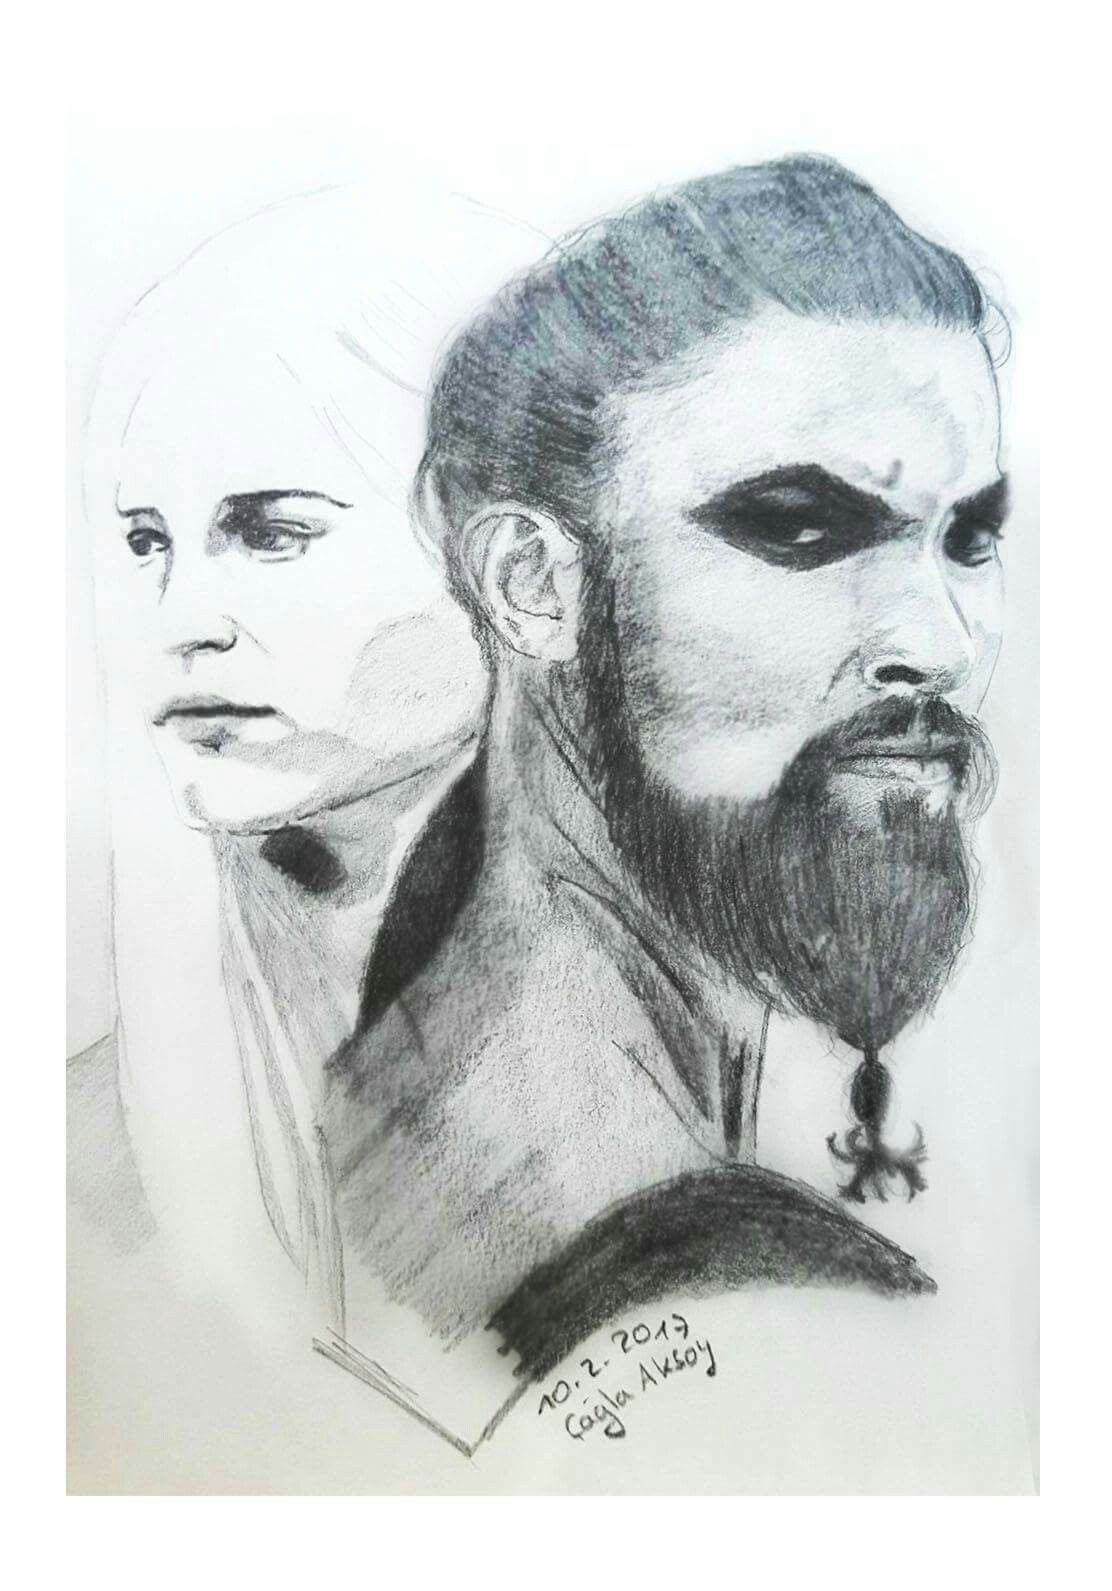 Khal drogo and khalessi from game of thrones drawing by cagla aksoy